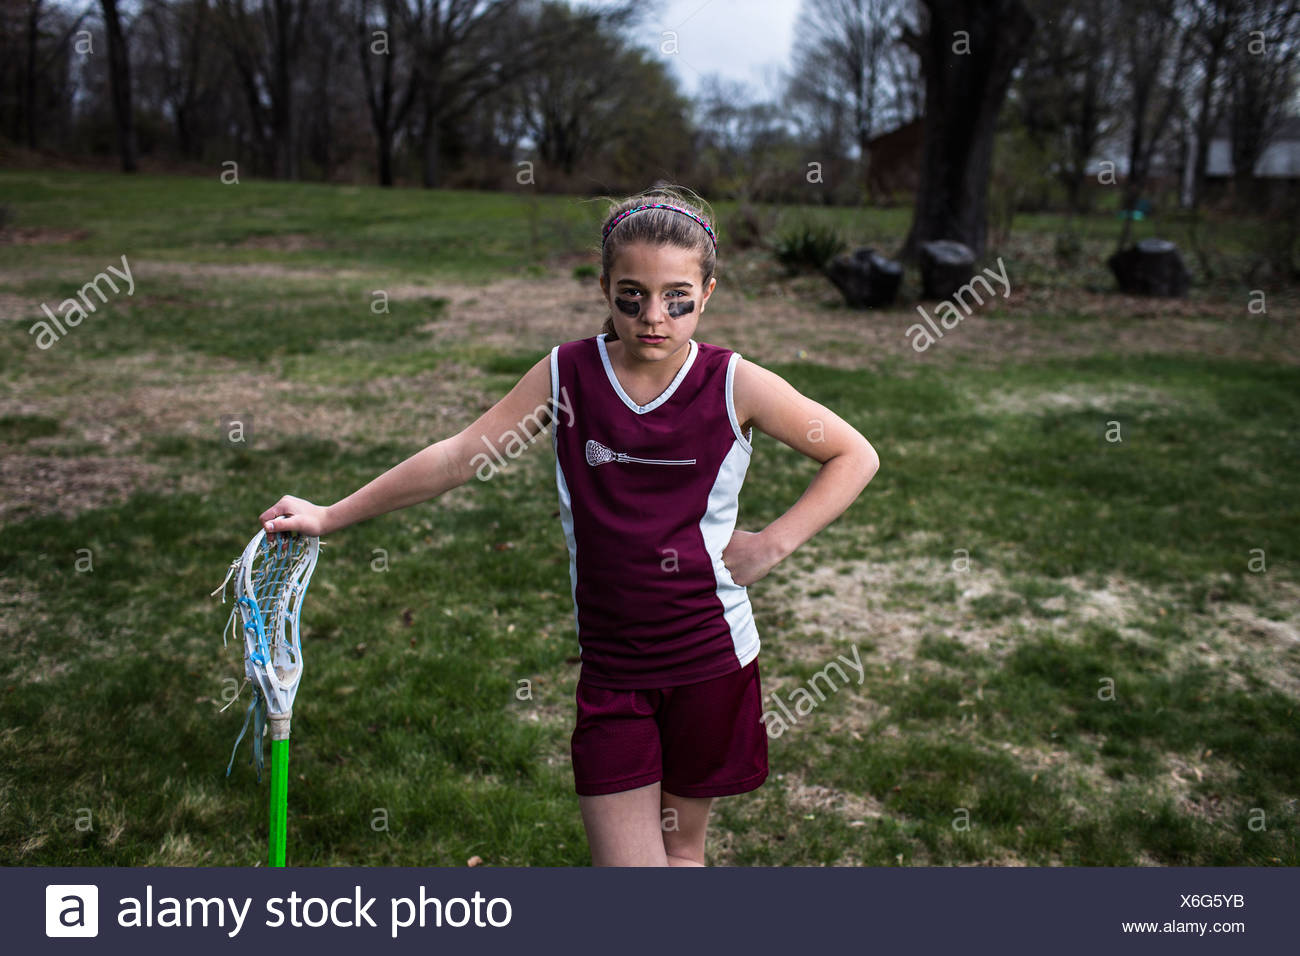 Girl wearing lacrosse uniform, leaning against lacrosse stick - Stock Image